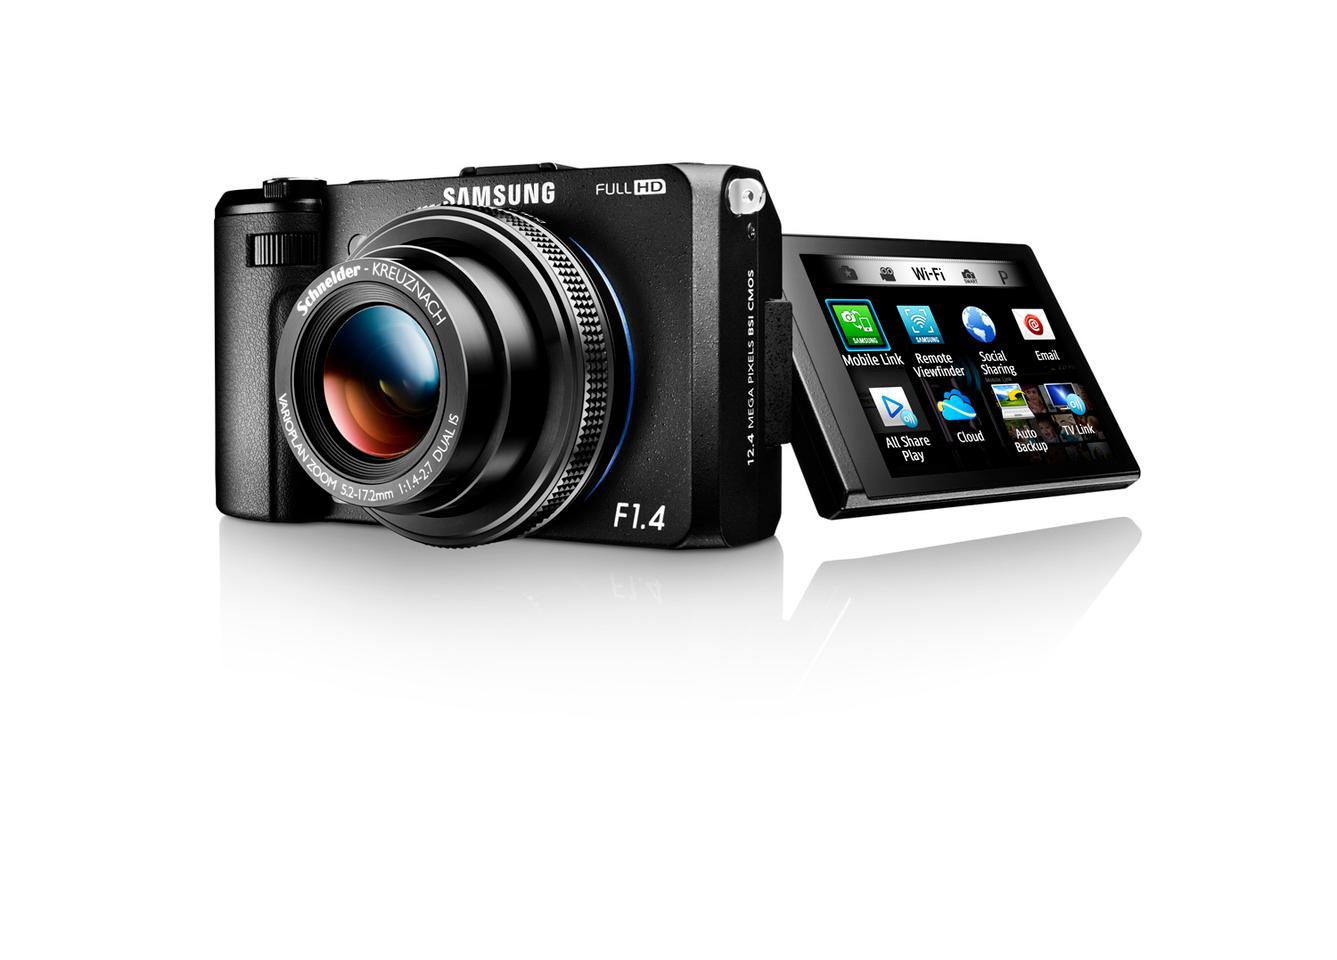 Samsung is retiring its EX1/TL500 compact camera and replacing it with the EX2F, which has built-in Wi-Fi, improved sensor and a fast F1.4 wide-angle lens